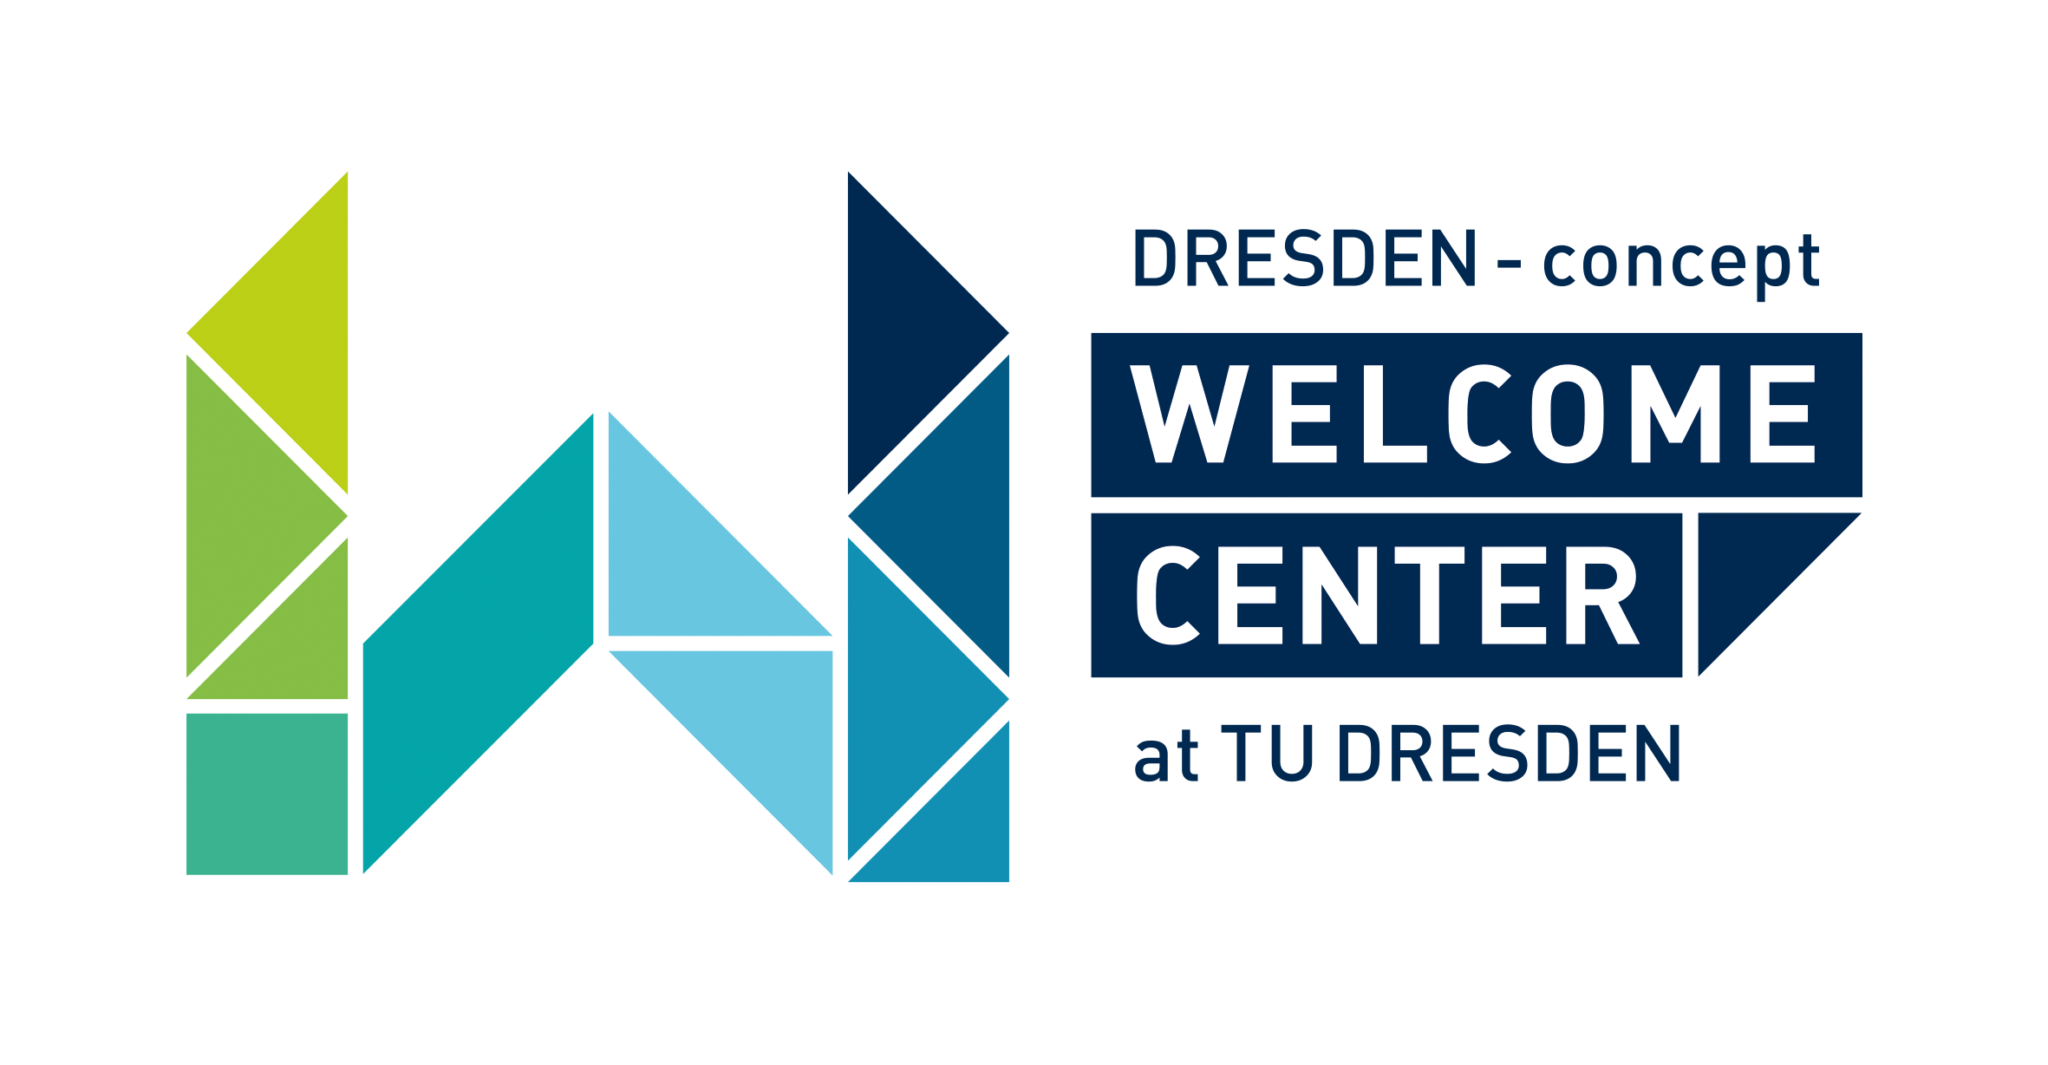 Website clipart welcome center. To dresden